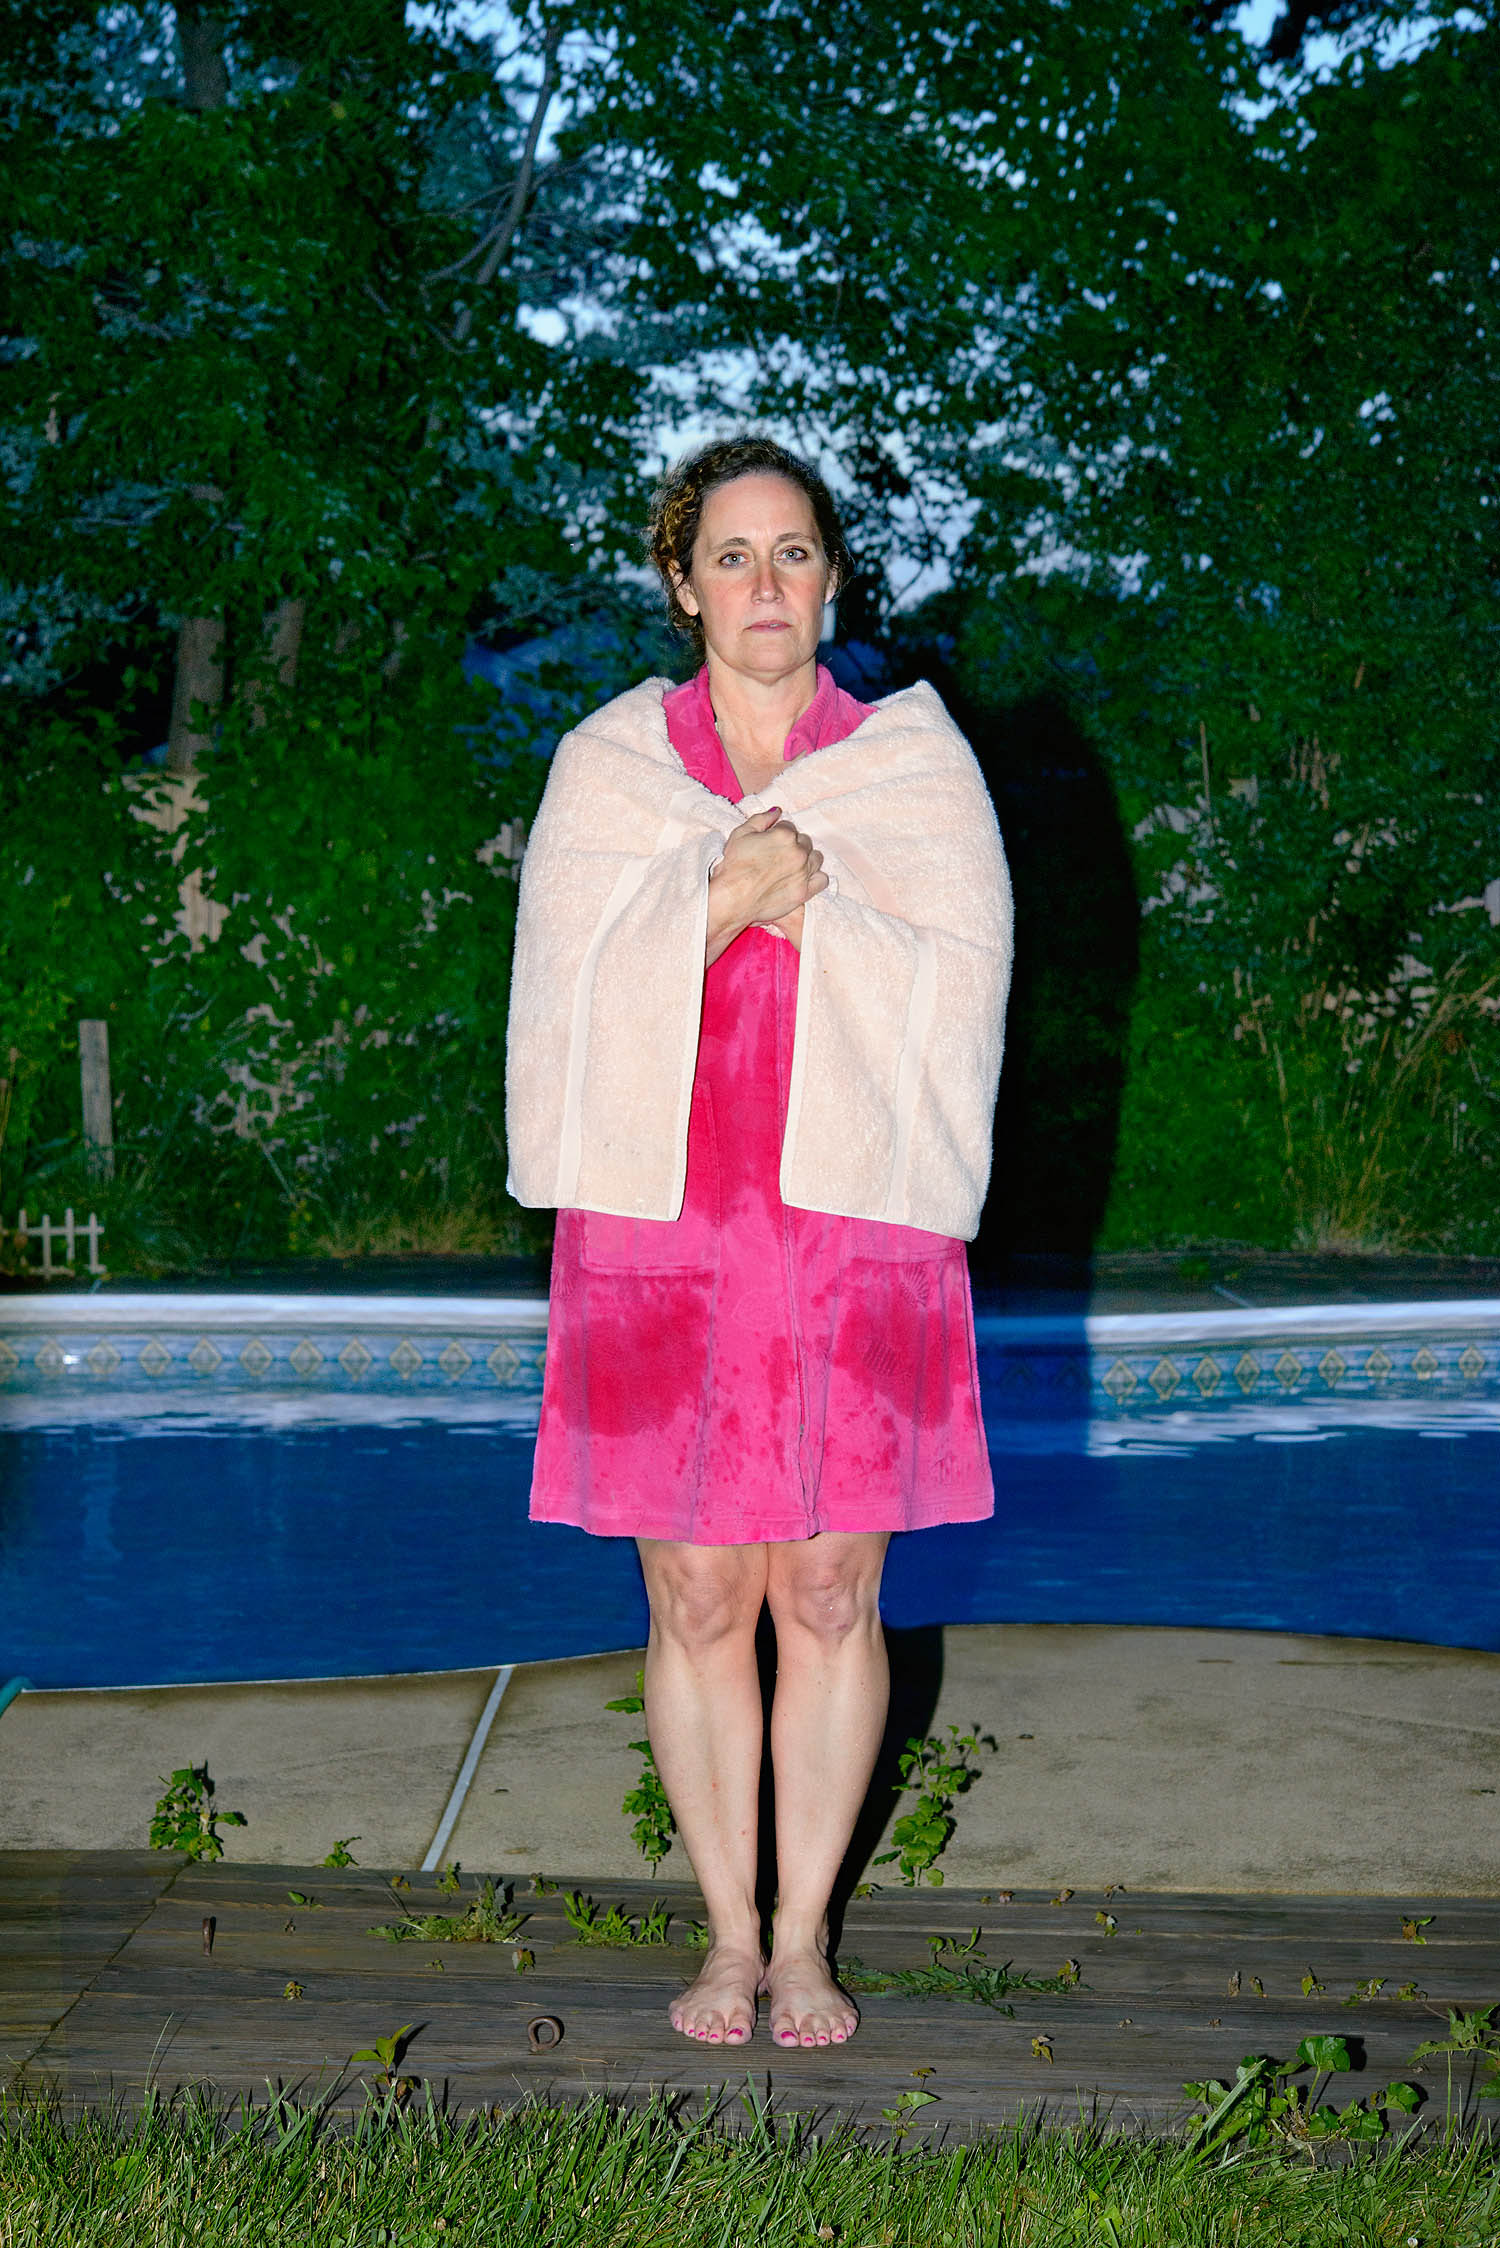 Donna LeMaster Rougeux, from Kentucky, by the pool